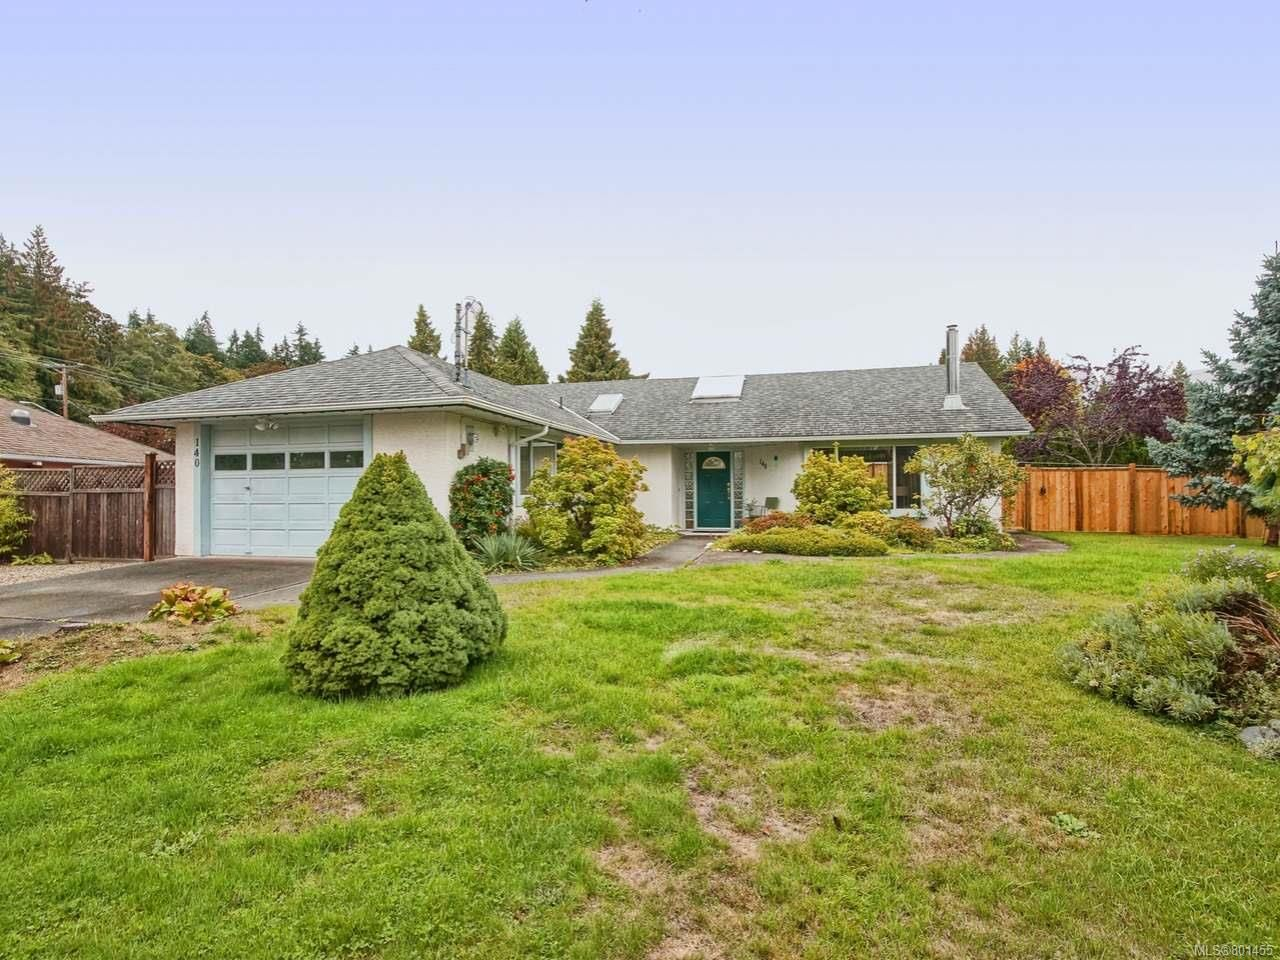 Main Photo: 140 E GARDEN E ROAD in QUALICUM BEACH: PQ Qualicum Beach House for sale (Parksville/Qualicum)  : MLS®# 801455